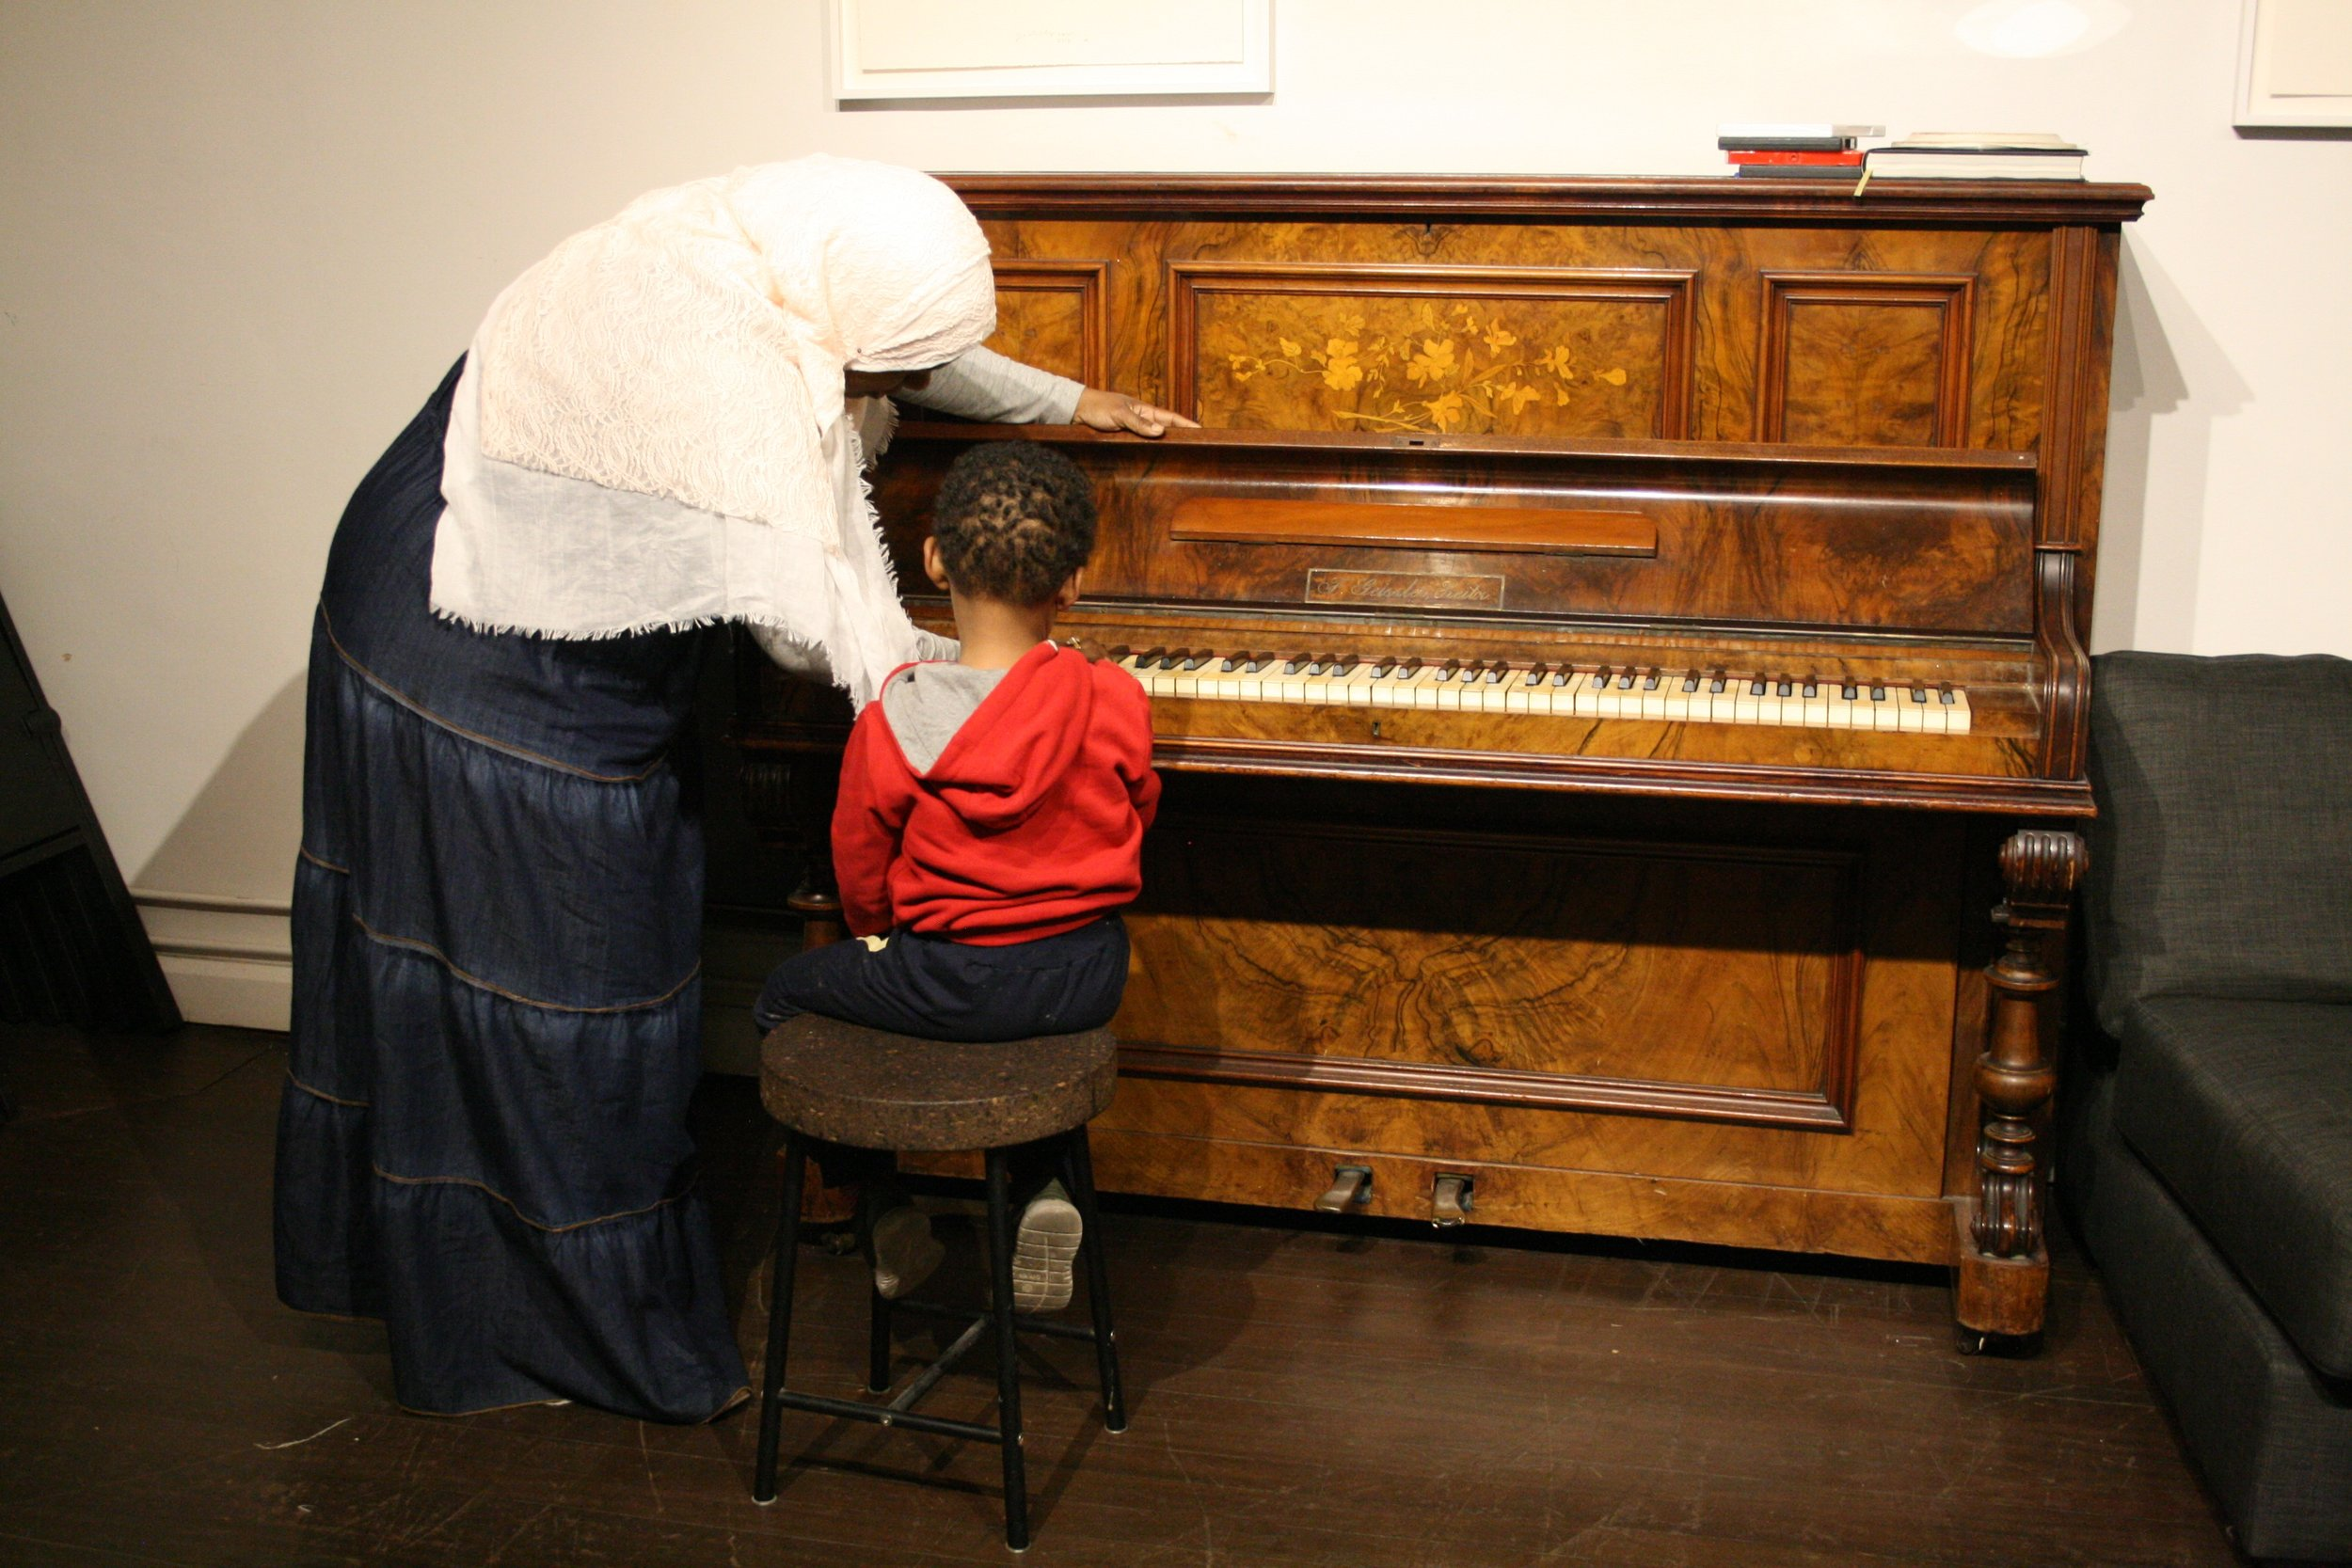 Woman, boy and piano IMG_6669.jpg